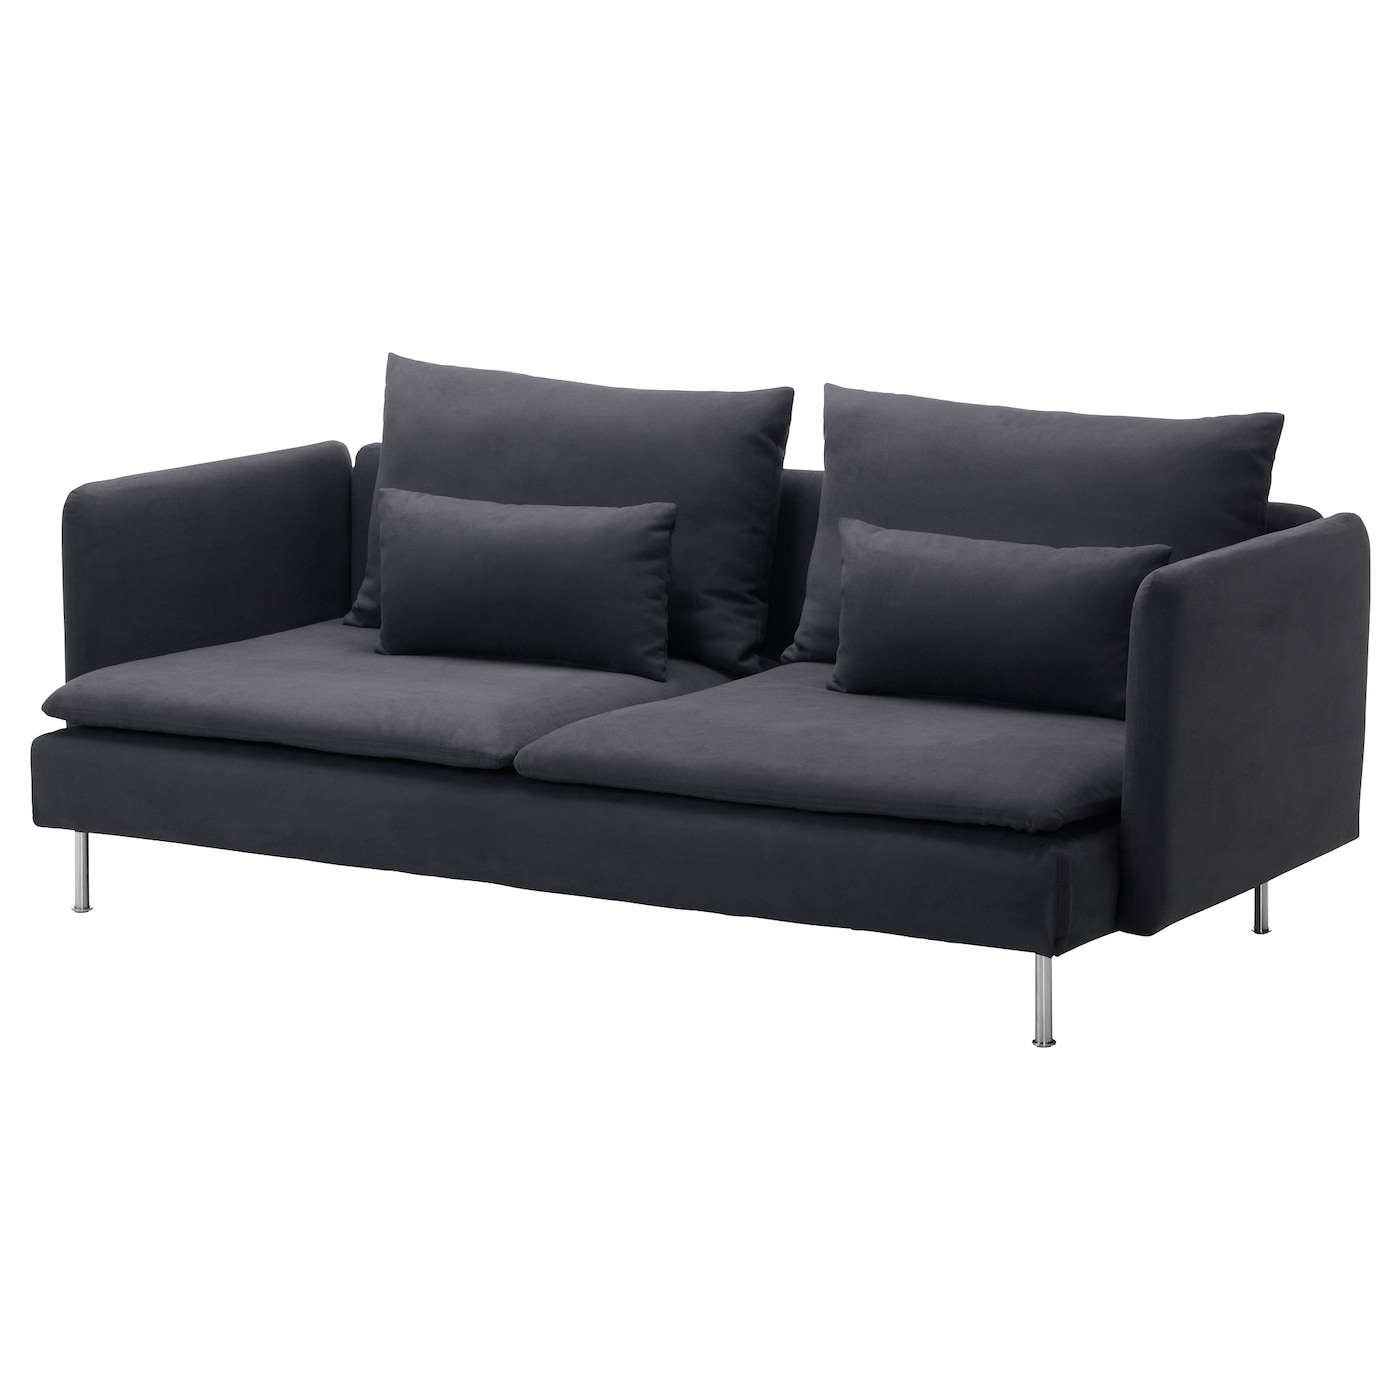 IKEA SÖDERHAMN 3-seat sofa Hardwearing microfibre which is soft and smooth.